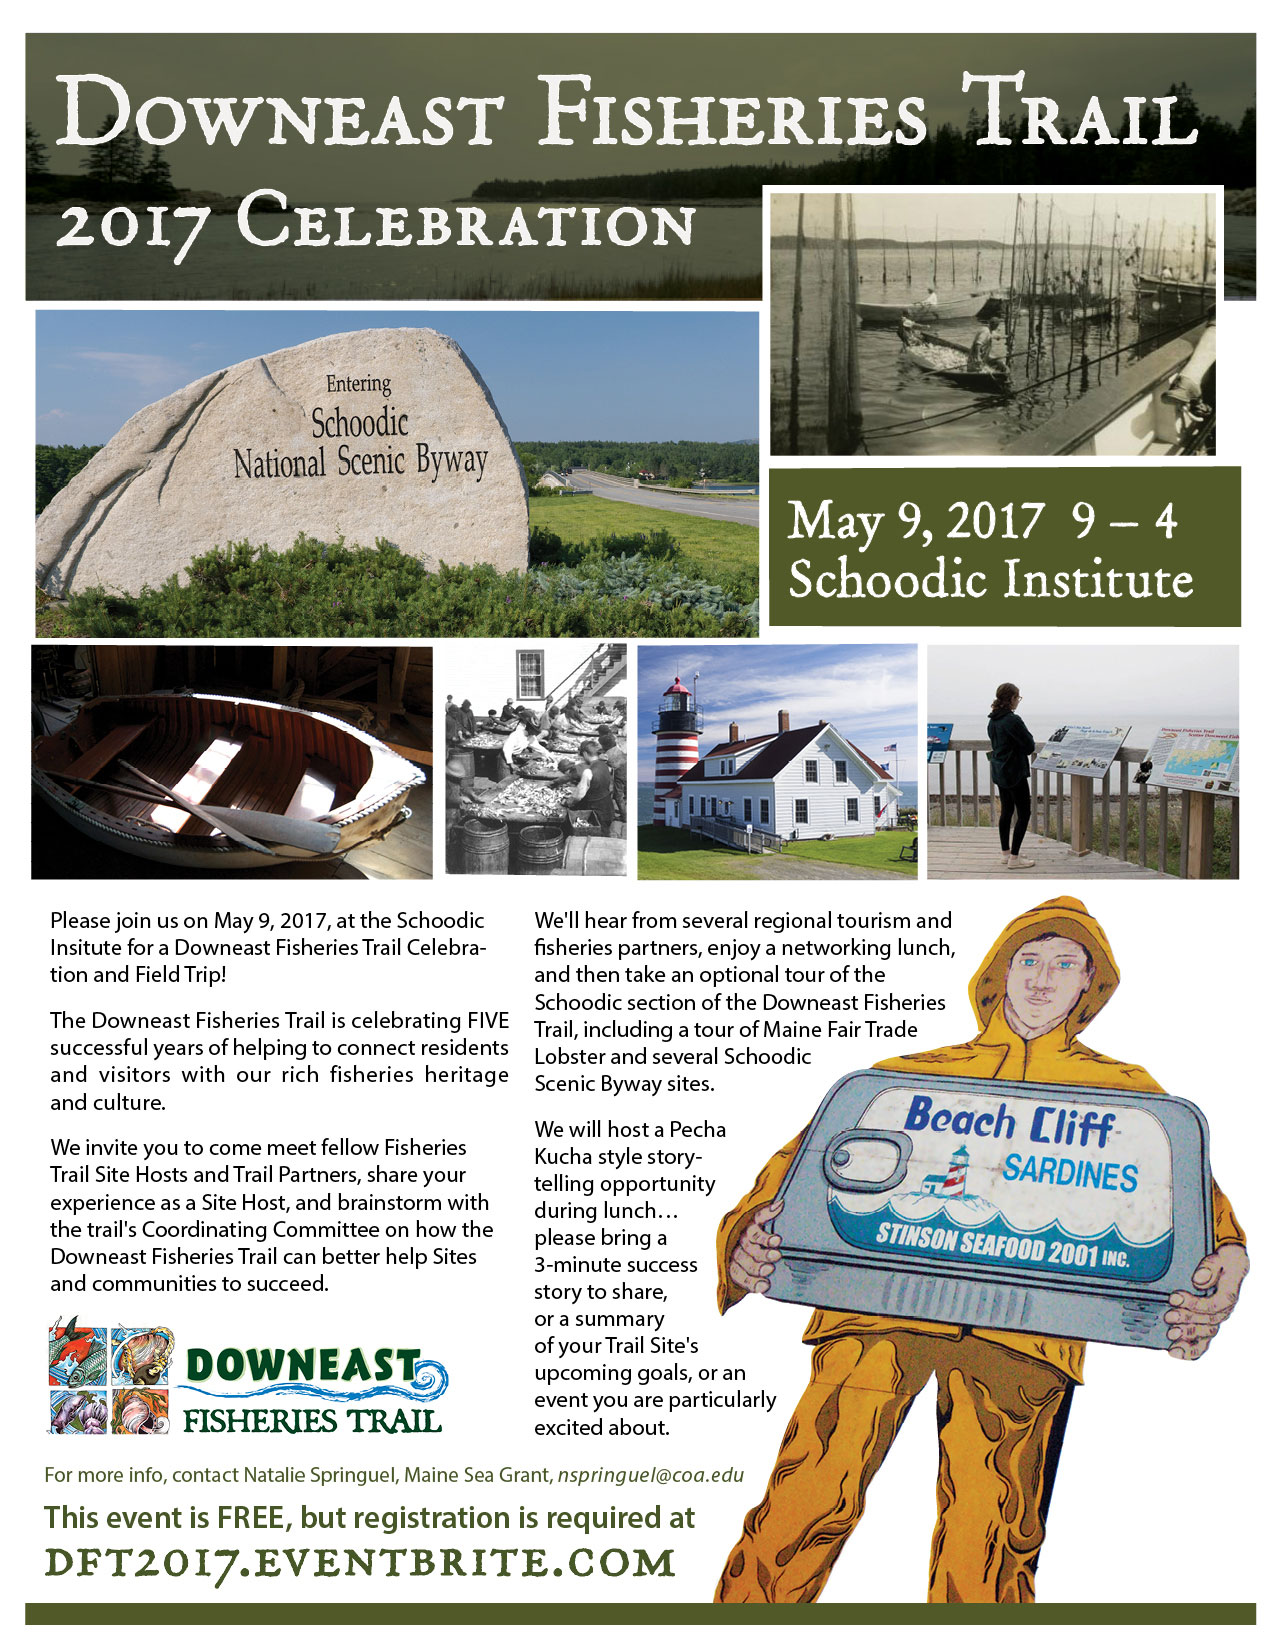 Downeast Fisheries Trail Celebration event flyer - click for PDF download